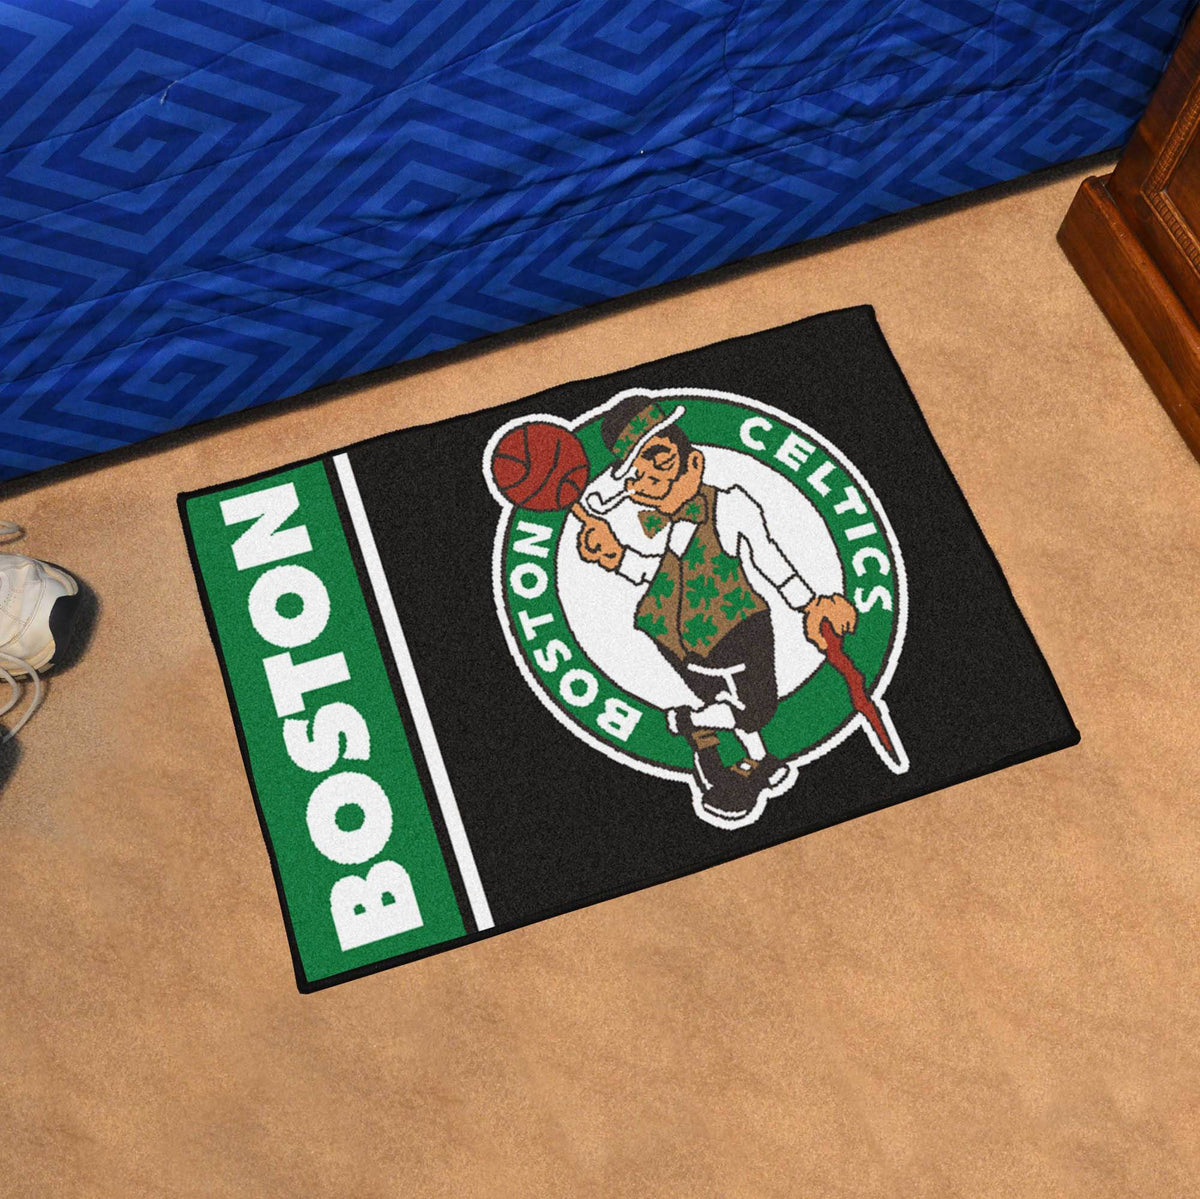 NBA - Uniform Starter Mat NBA Mats, Rectangular Mats, Uniform Starter Mat, NBA, Home Fan Mats Boston Celtics